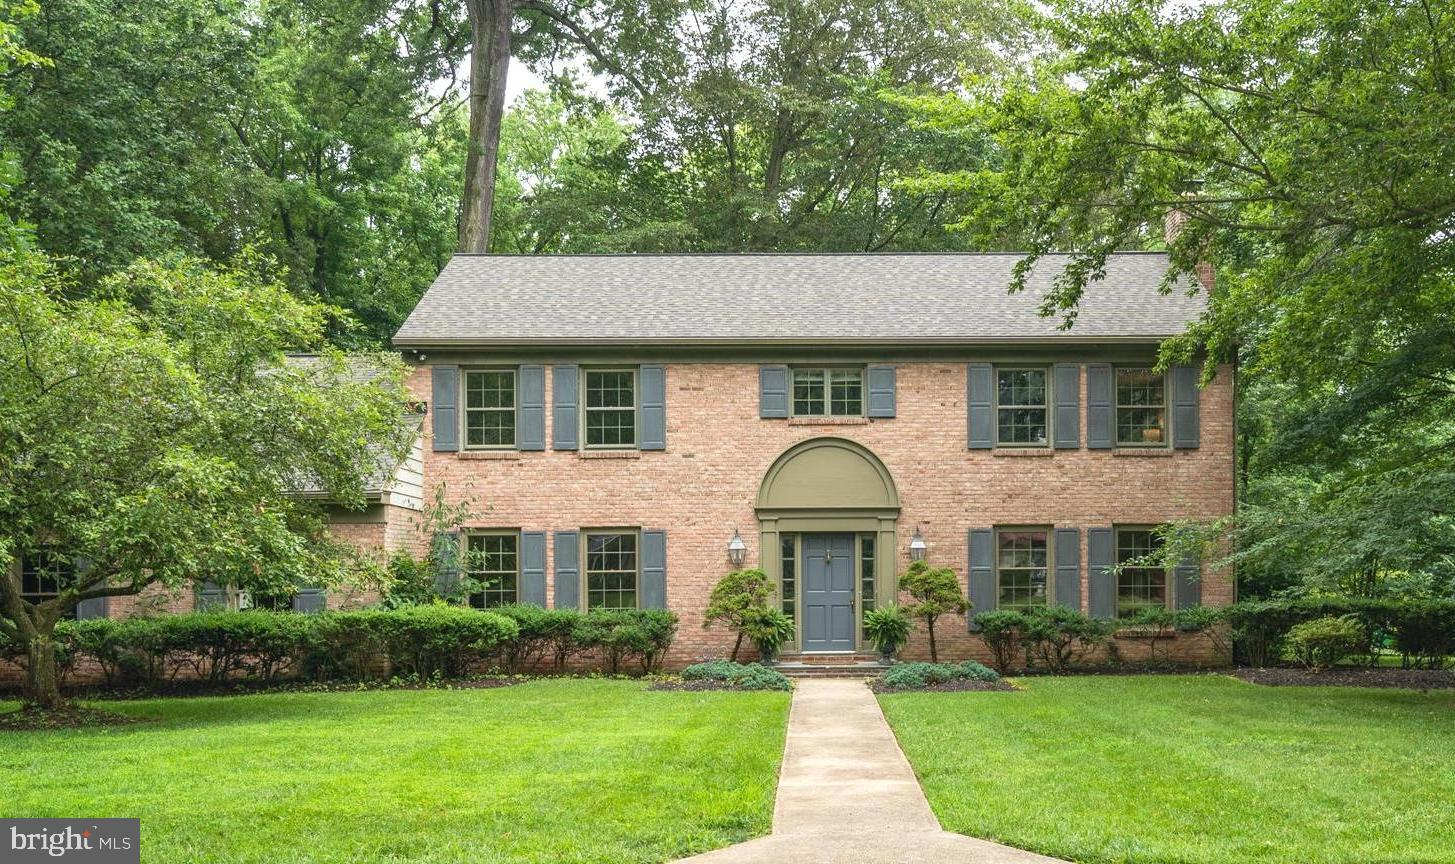 1009 WELDIN CIRCLE, WILMINGTON, DE 19803